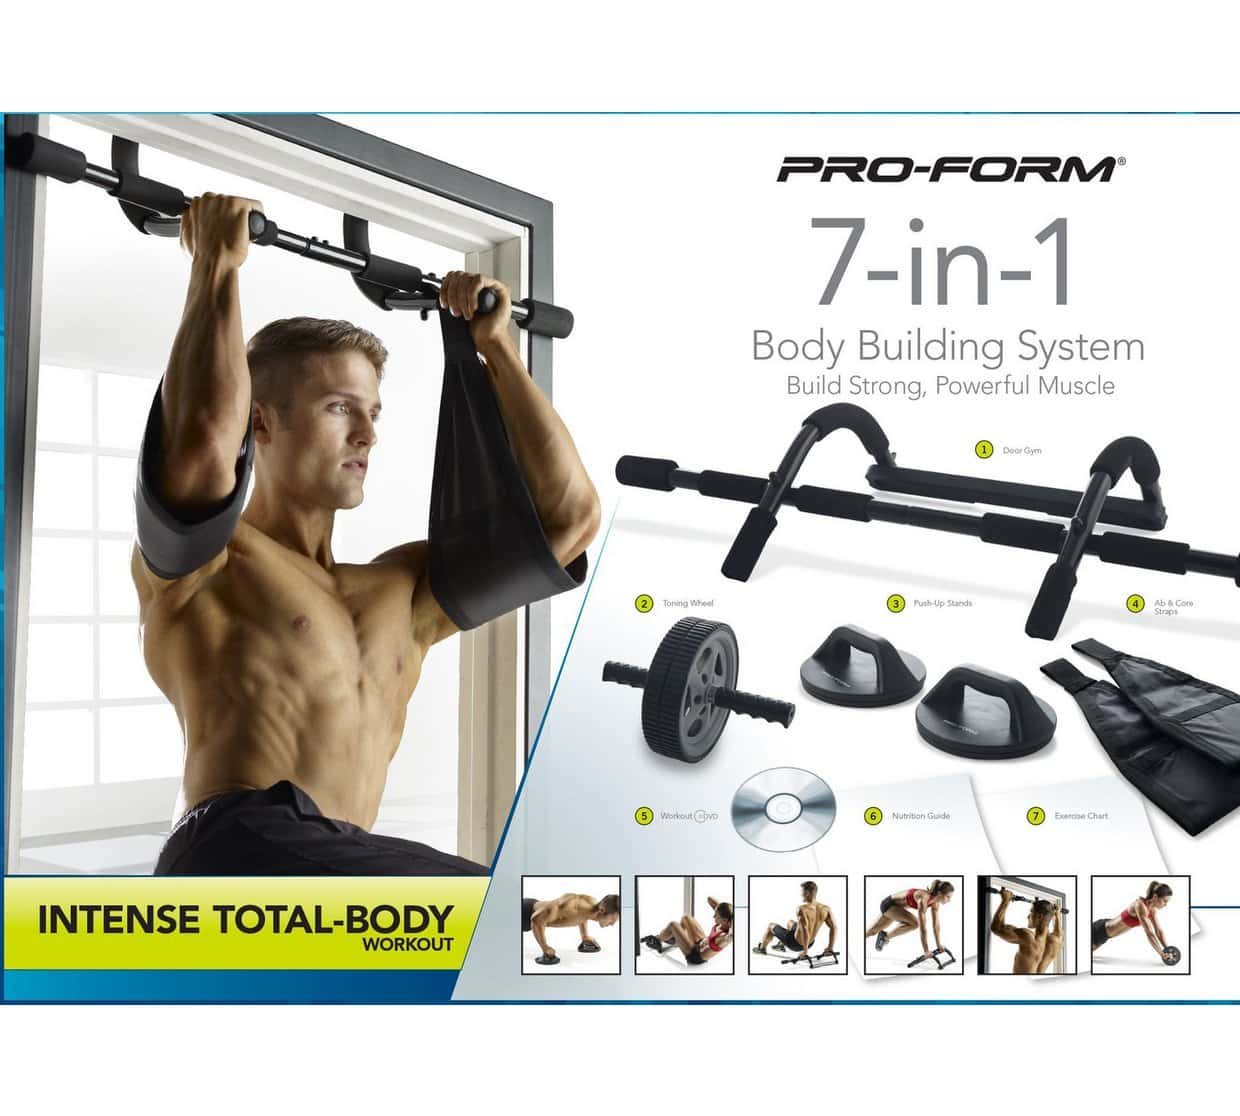 ProForm 7-in-1 Body Building System Cross Training